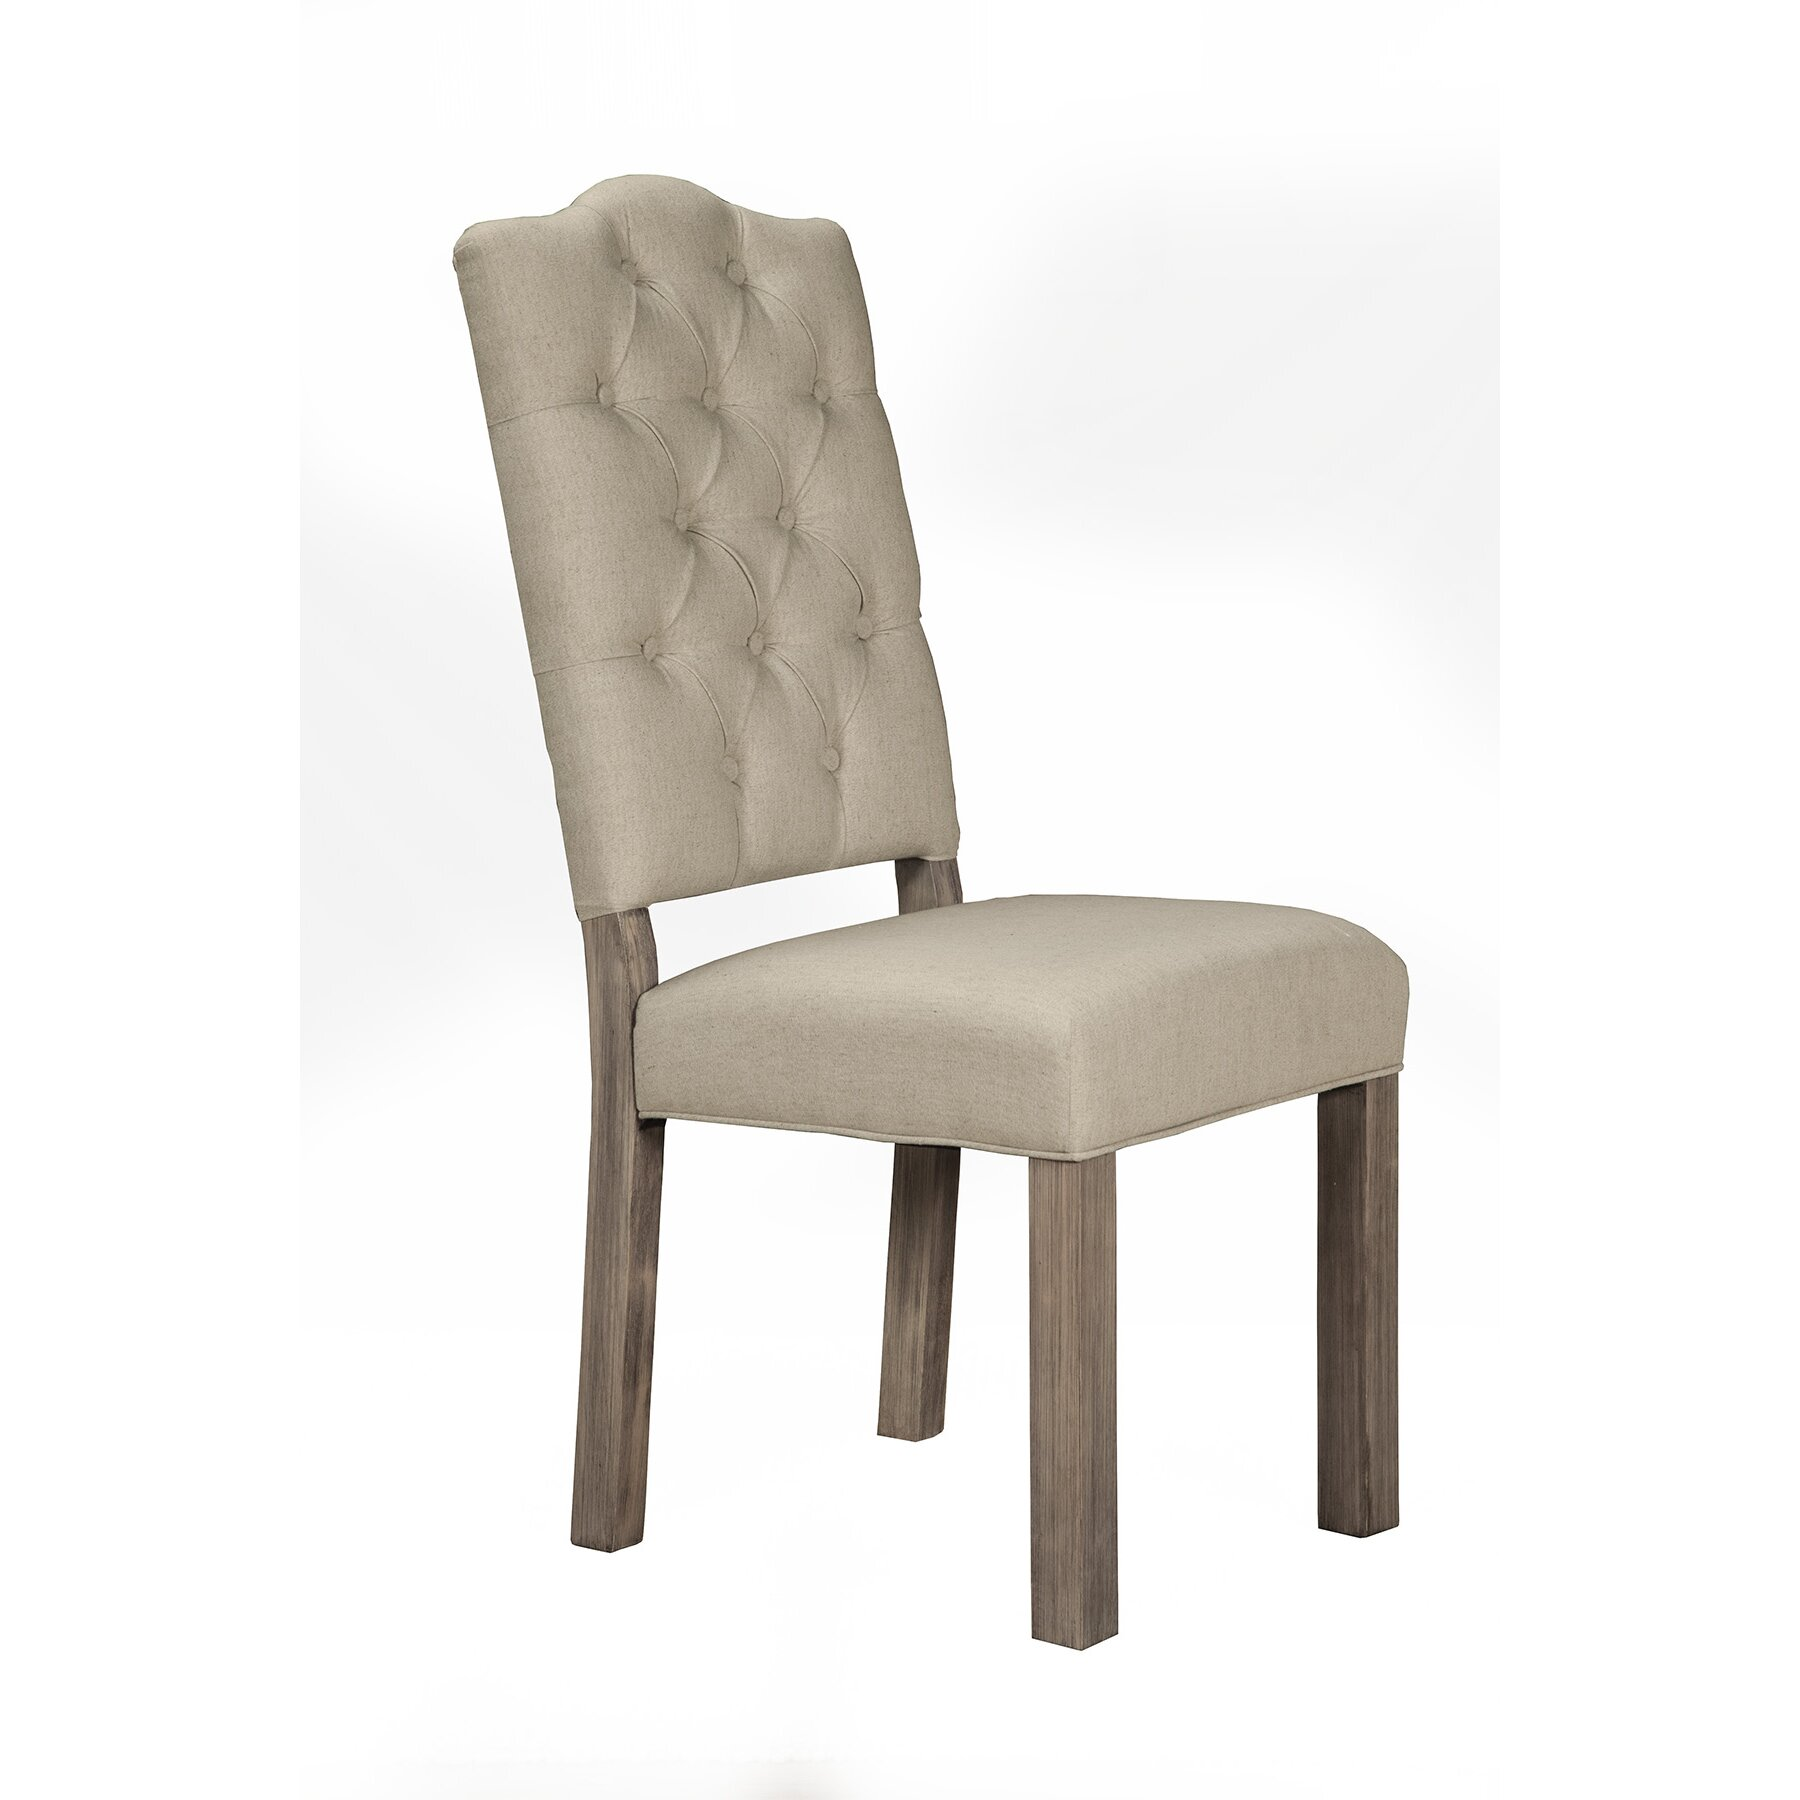 Fiji Tufted Upholstered Side Chair by Origins by Alpine